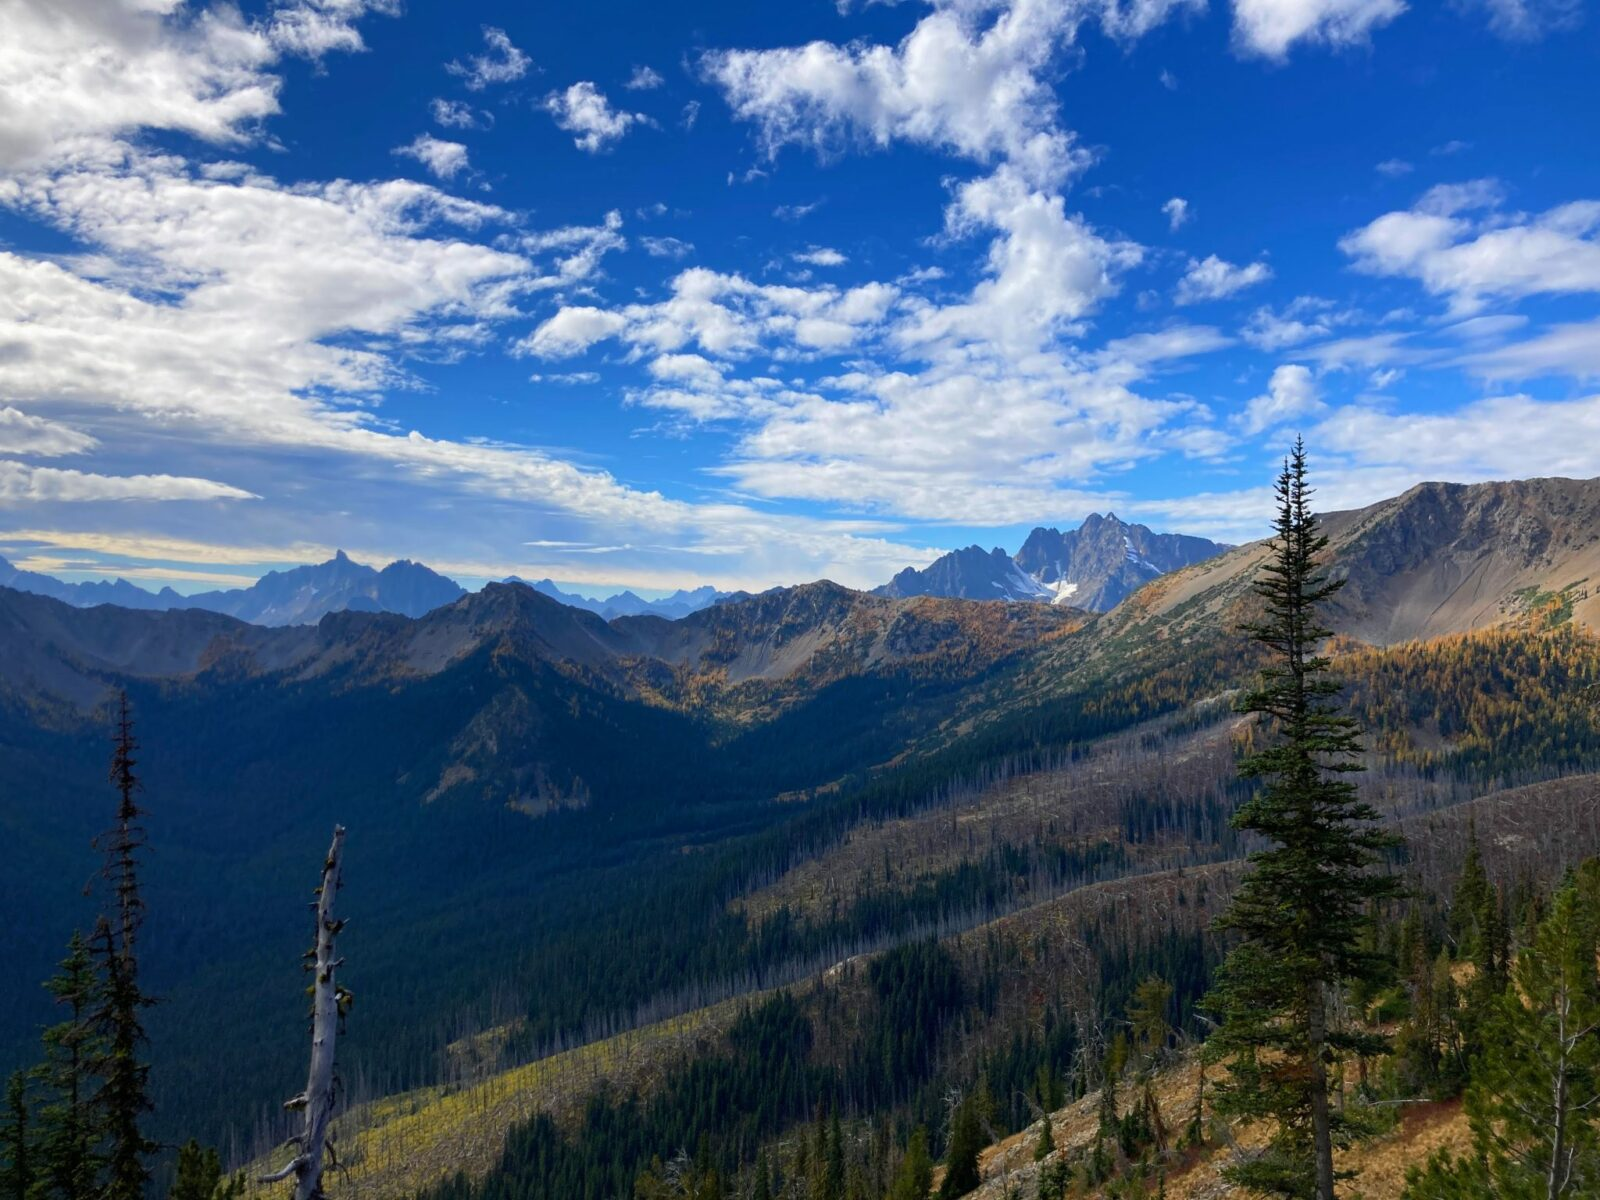 Distant mountains with white clouds against a blue sky. There is a valley in the foreground and evergreen trees and golden larches. Grasshopper Pass is in the distance